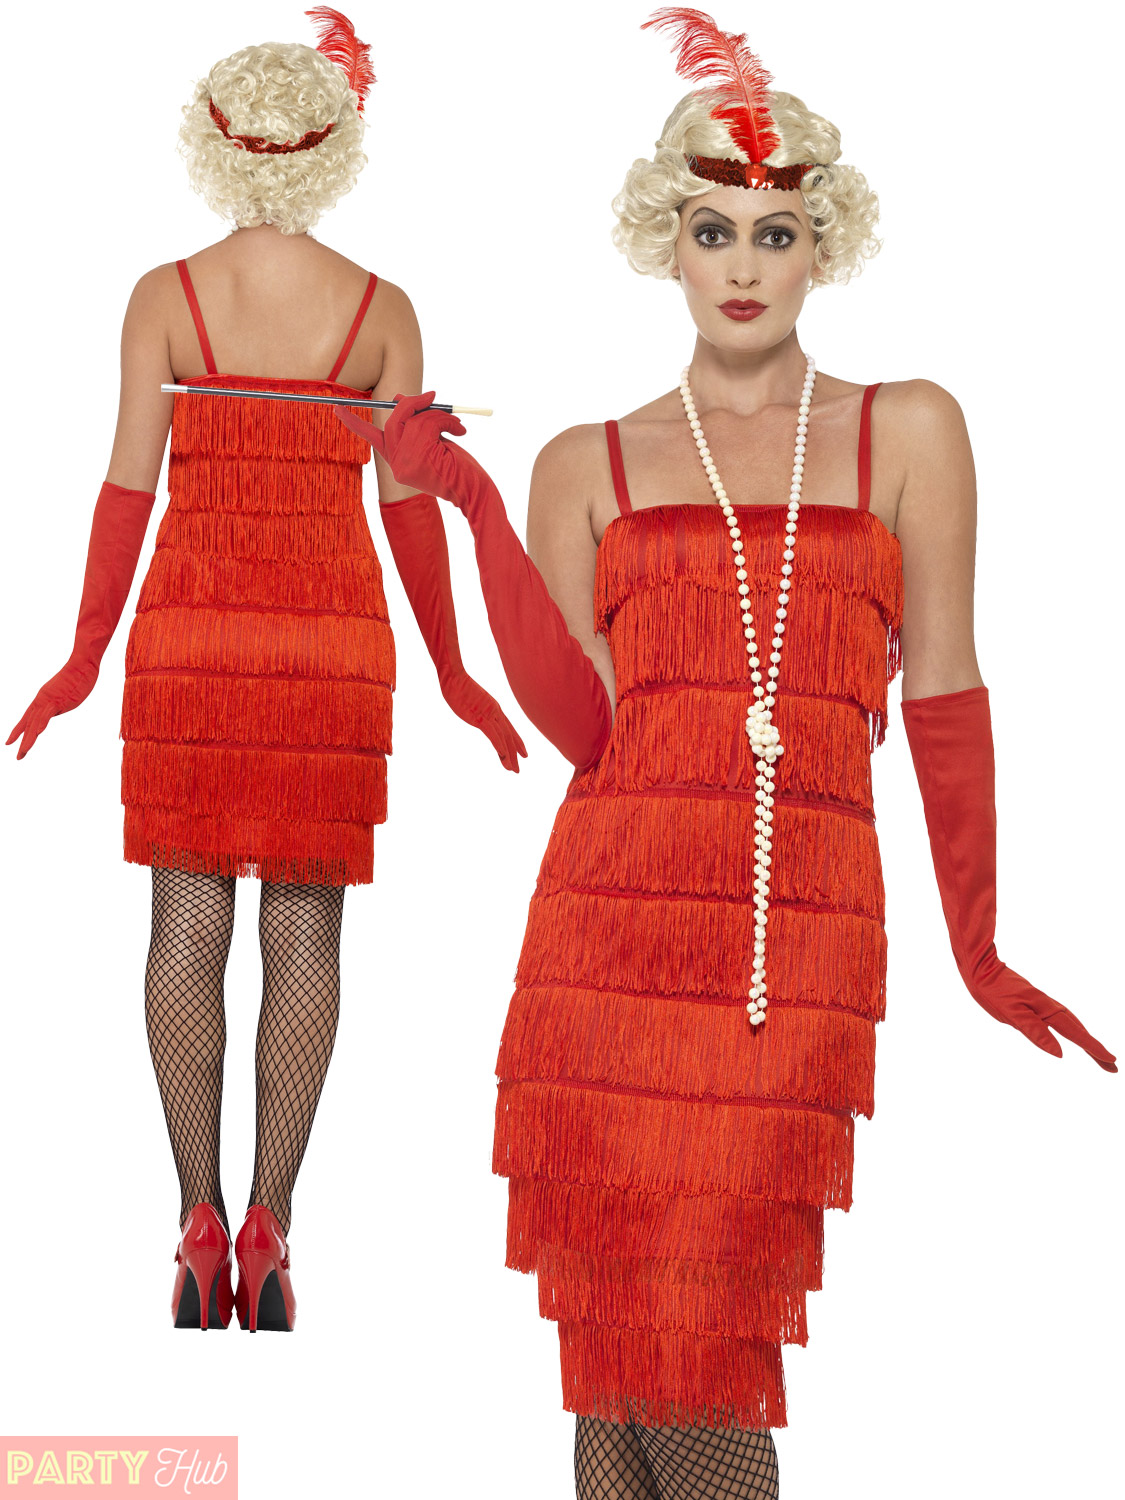 eBay Flapper Dresses